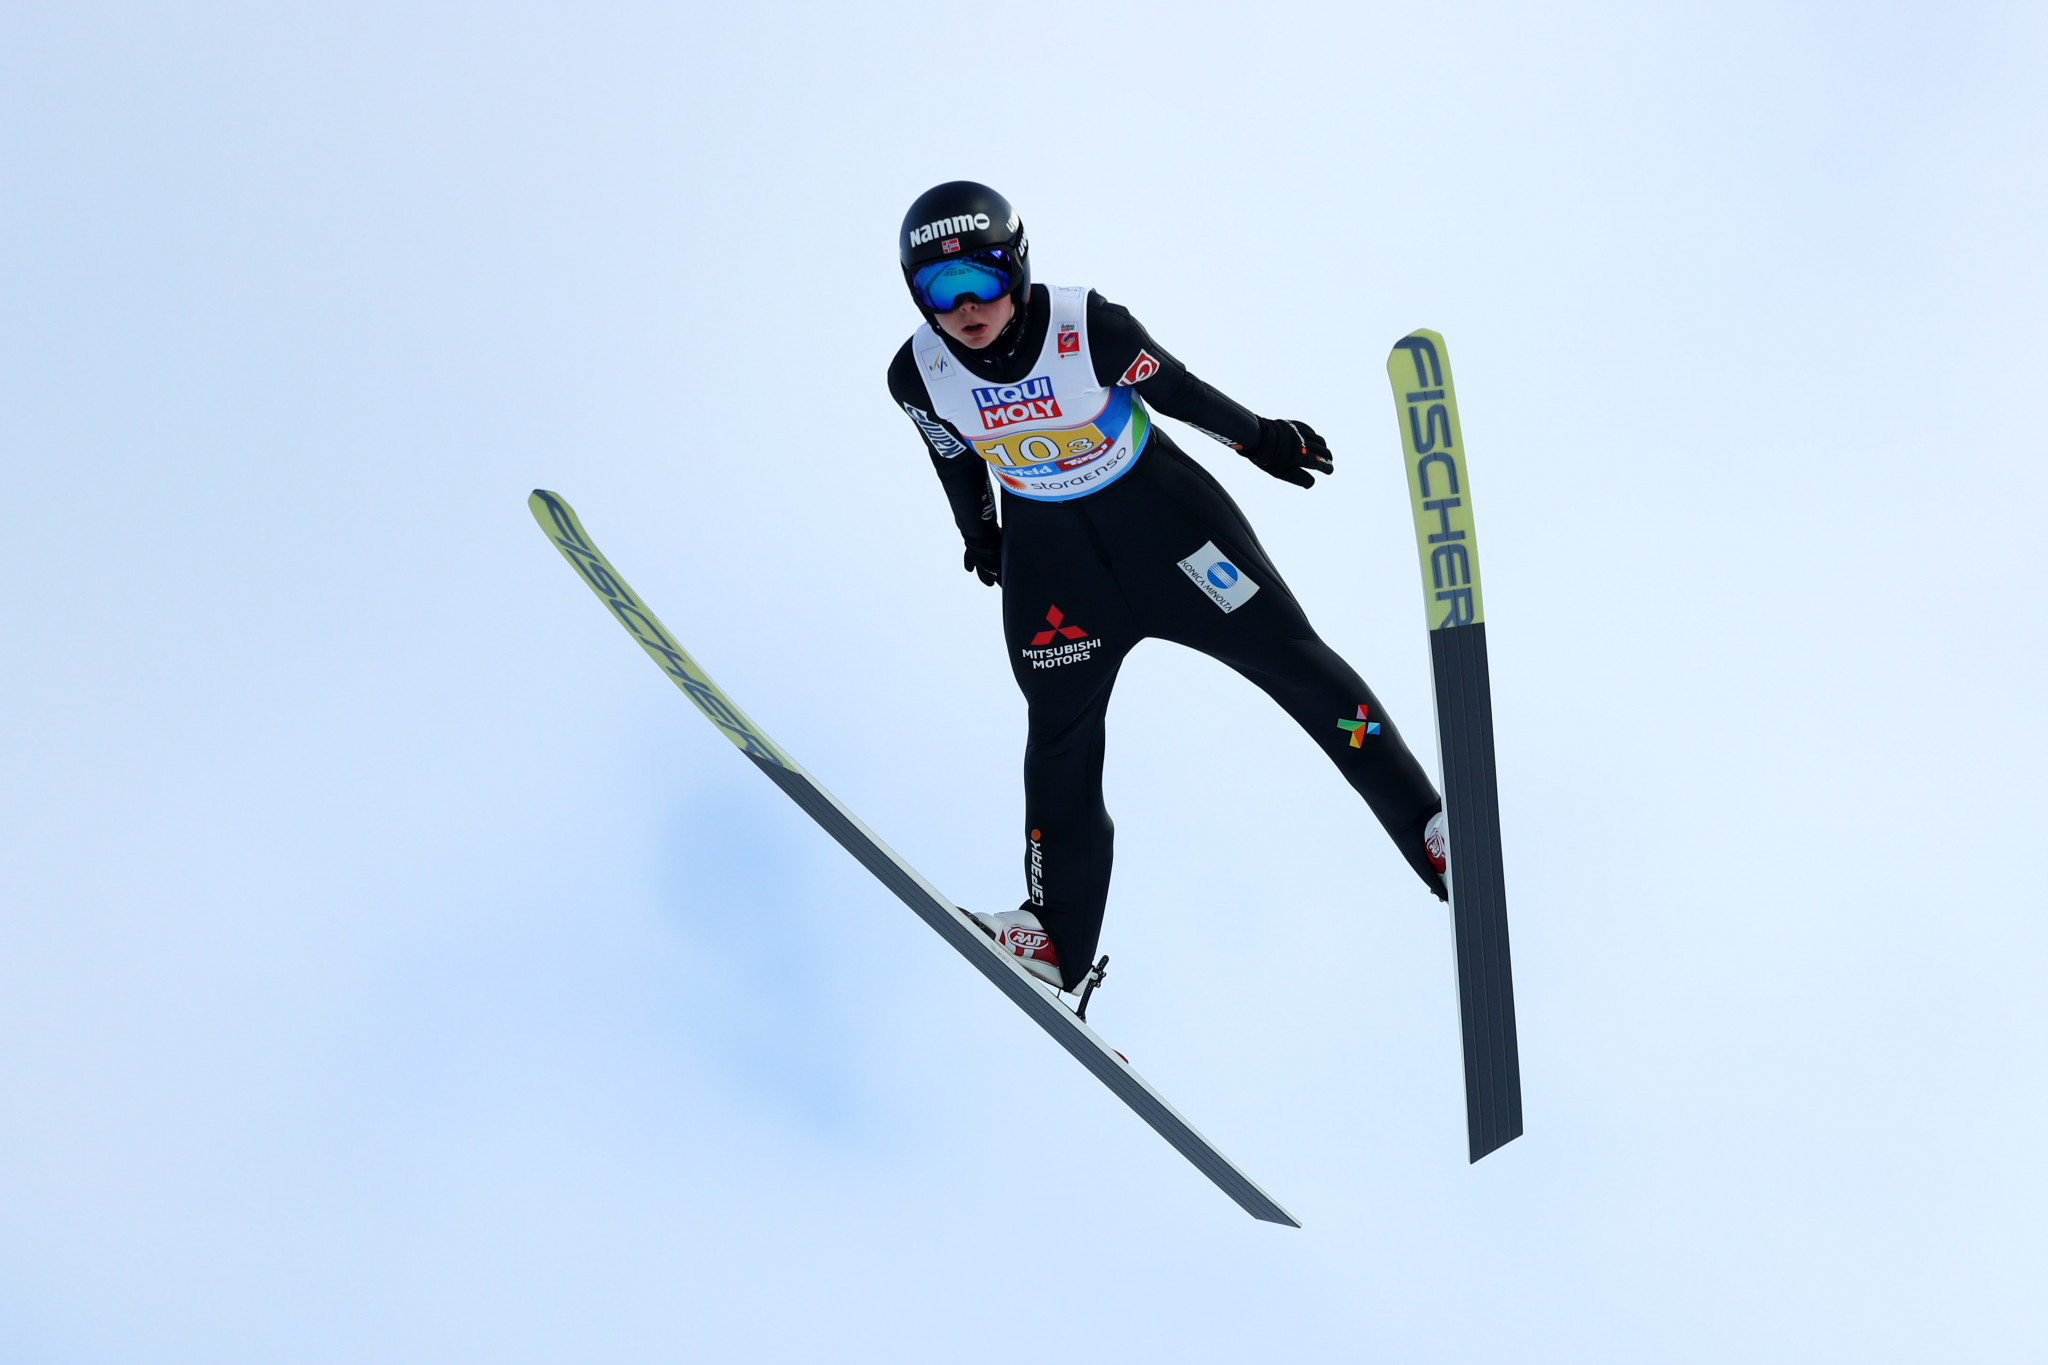 Olympc champion Maren Lundby of Norway will be competing at the FIS Ski Jumping World Cup event in Lillehammer ©Getty Images